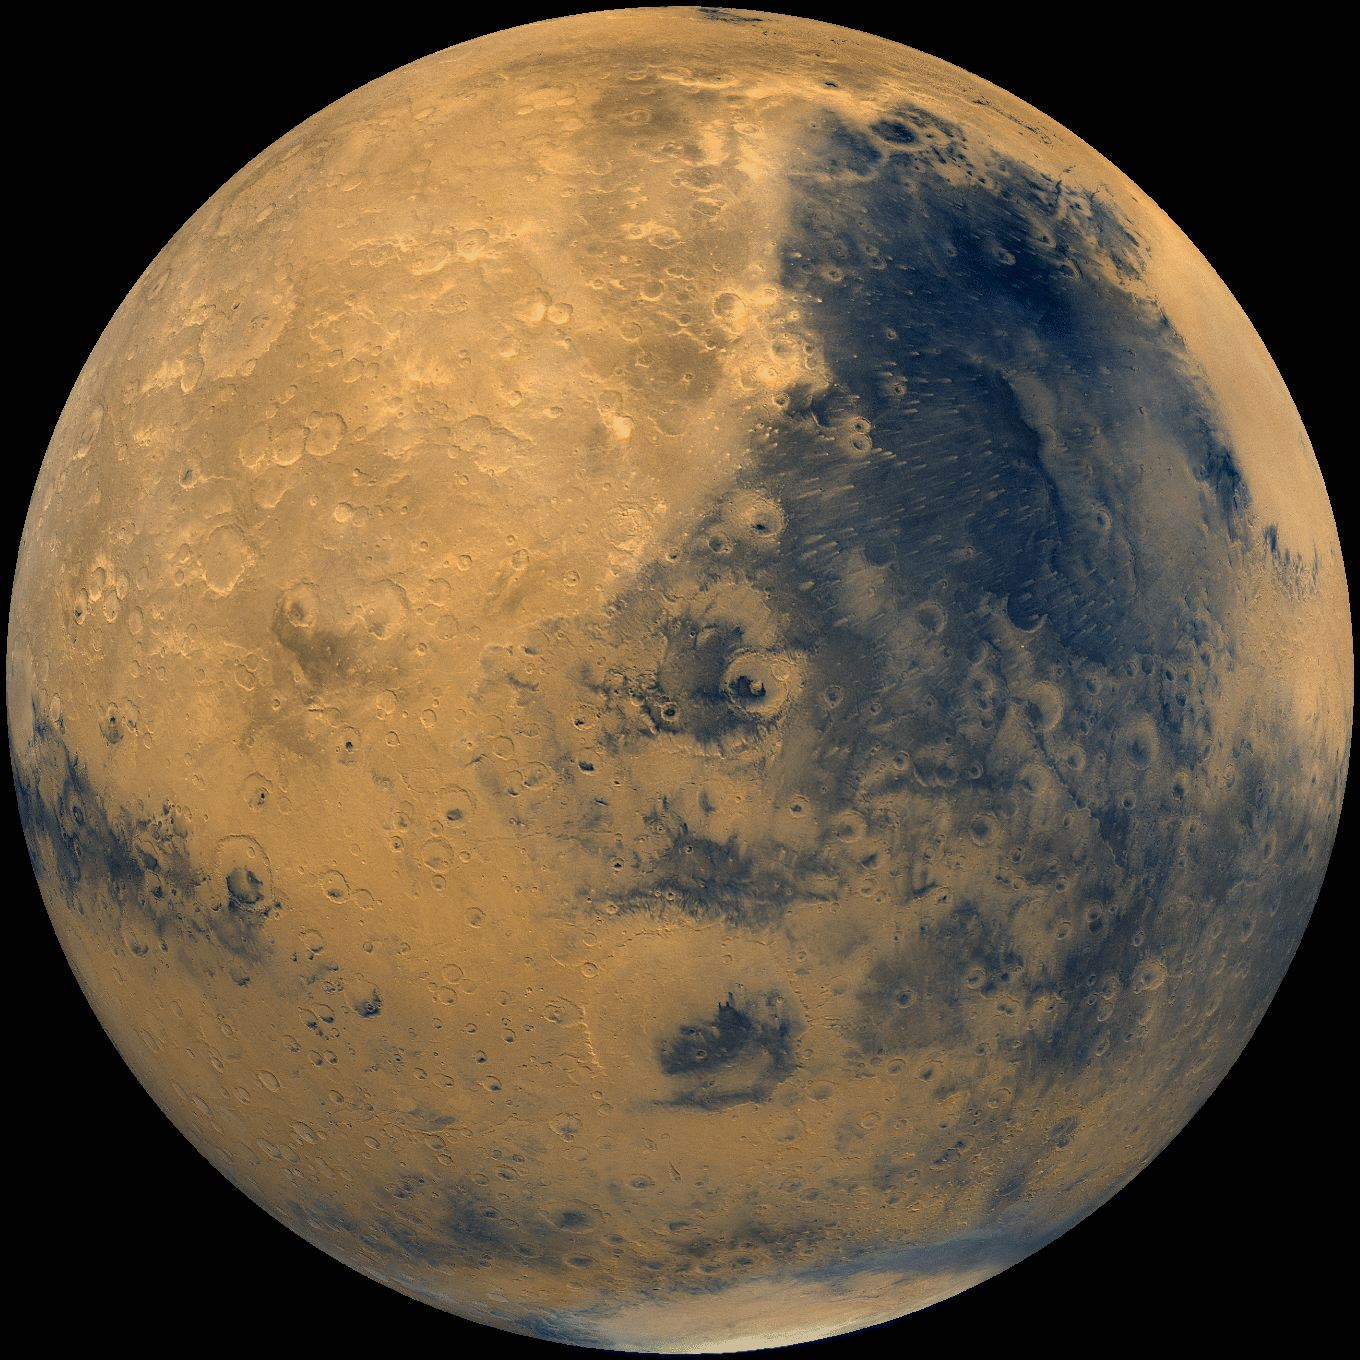 Search for Life Guides NASA's New Mars Mission Plan